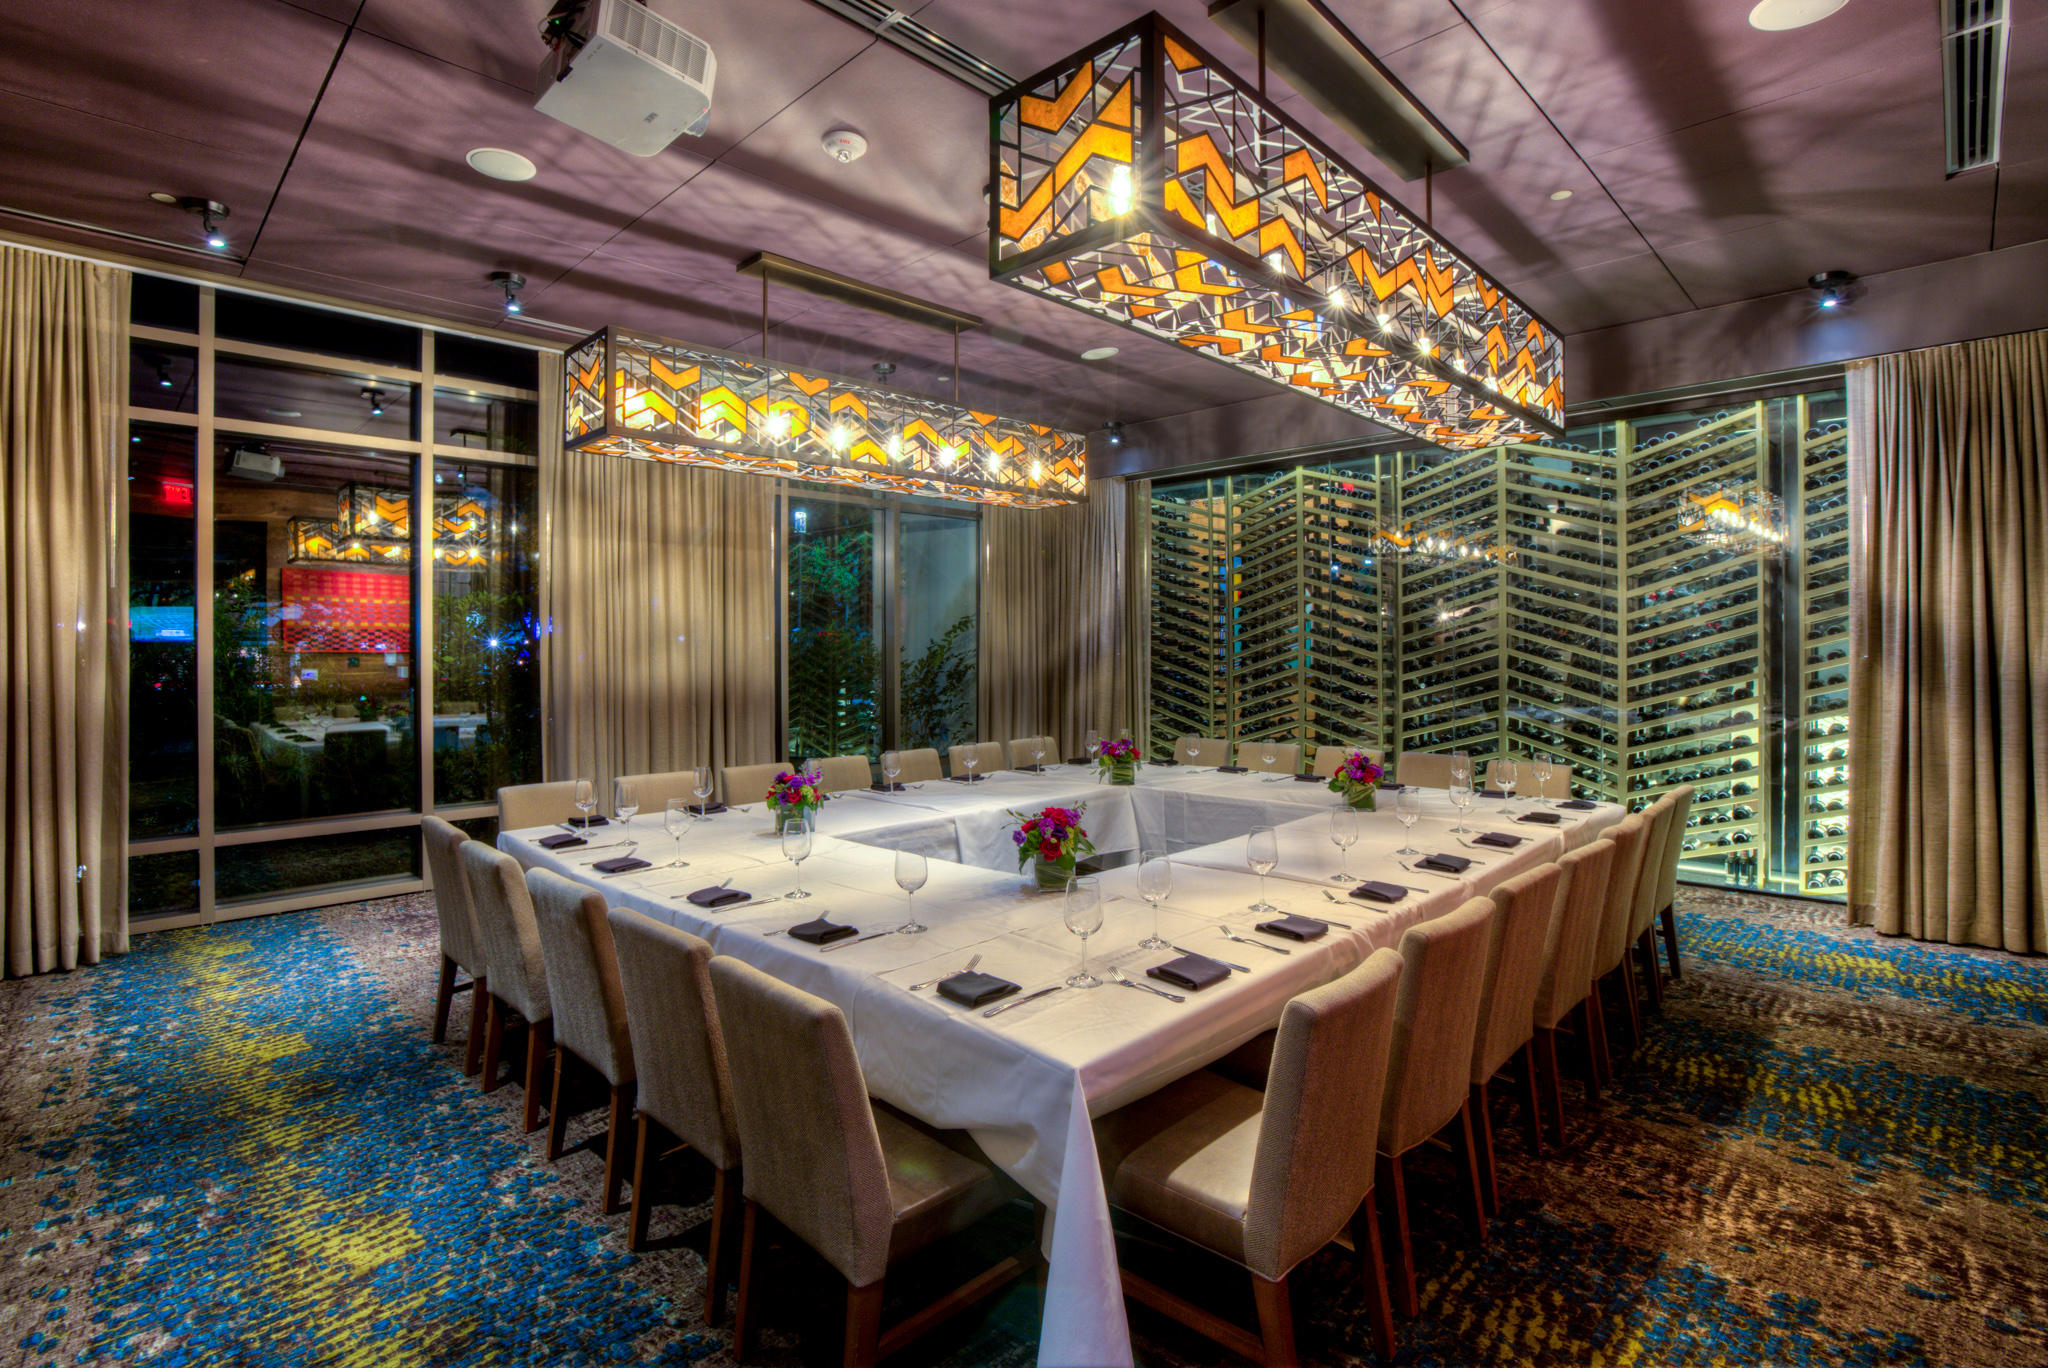 Del Frisco's Double Eagle Steakhouse Orlando BARREL ROOM (HALF CELLAR) private dining room